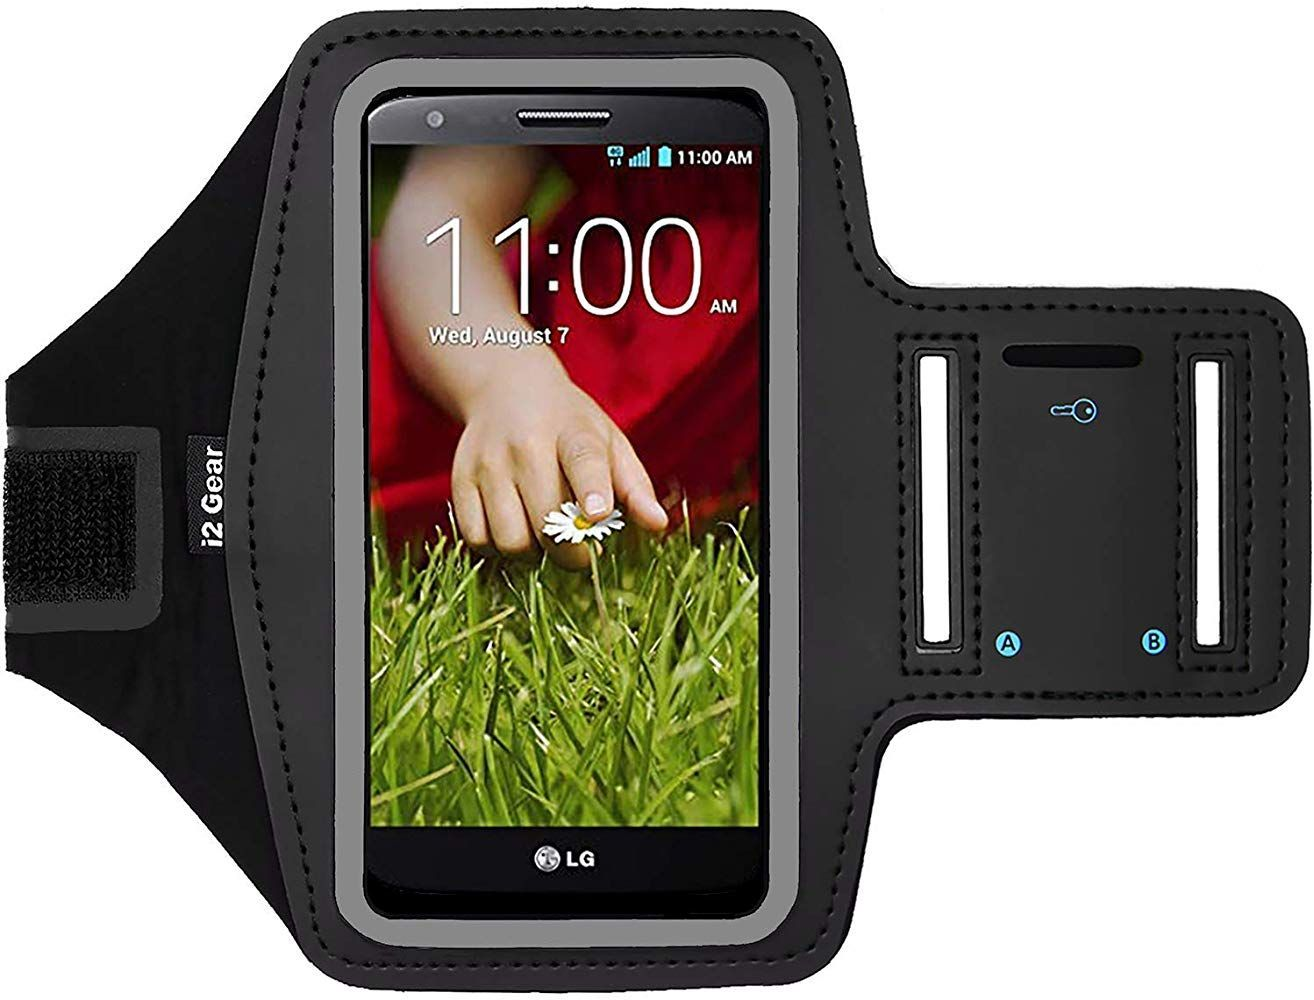 i2 Gear Fitness Cell Phone Armband for Running - Workout Phone Holder with Adjustable Strap Reflective Edge - Arm Band Case for LG G2 G2 Mini G2 Mini LTE LG G2 Lite (Black) #watches #jewelry #fashions #trends #moda #women #men #armband #armbandworkouts i2 Gear Fitness Cell Phone Armband for Running - Workout Phone Holder with Adjustable Strap Reflective Edge - Arm Band Case for LG G2 G2 Mini G2 Mini LTE LG G2 Lite (Black) #watches #jewelry #fashions #trends #moda #women #men #armband #armbandworkouts